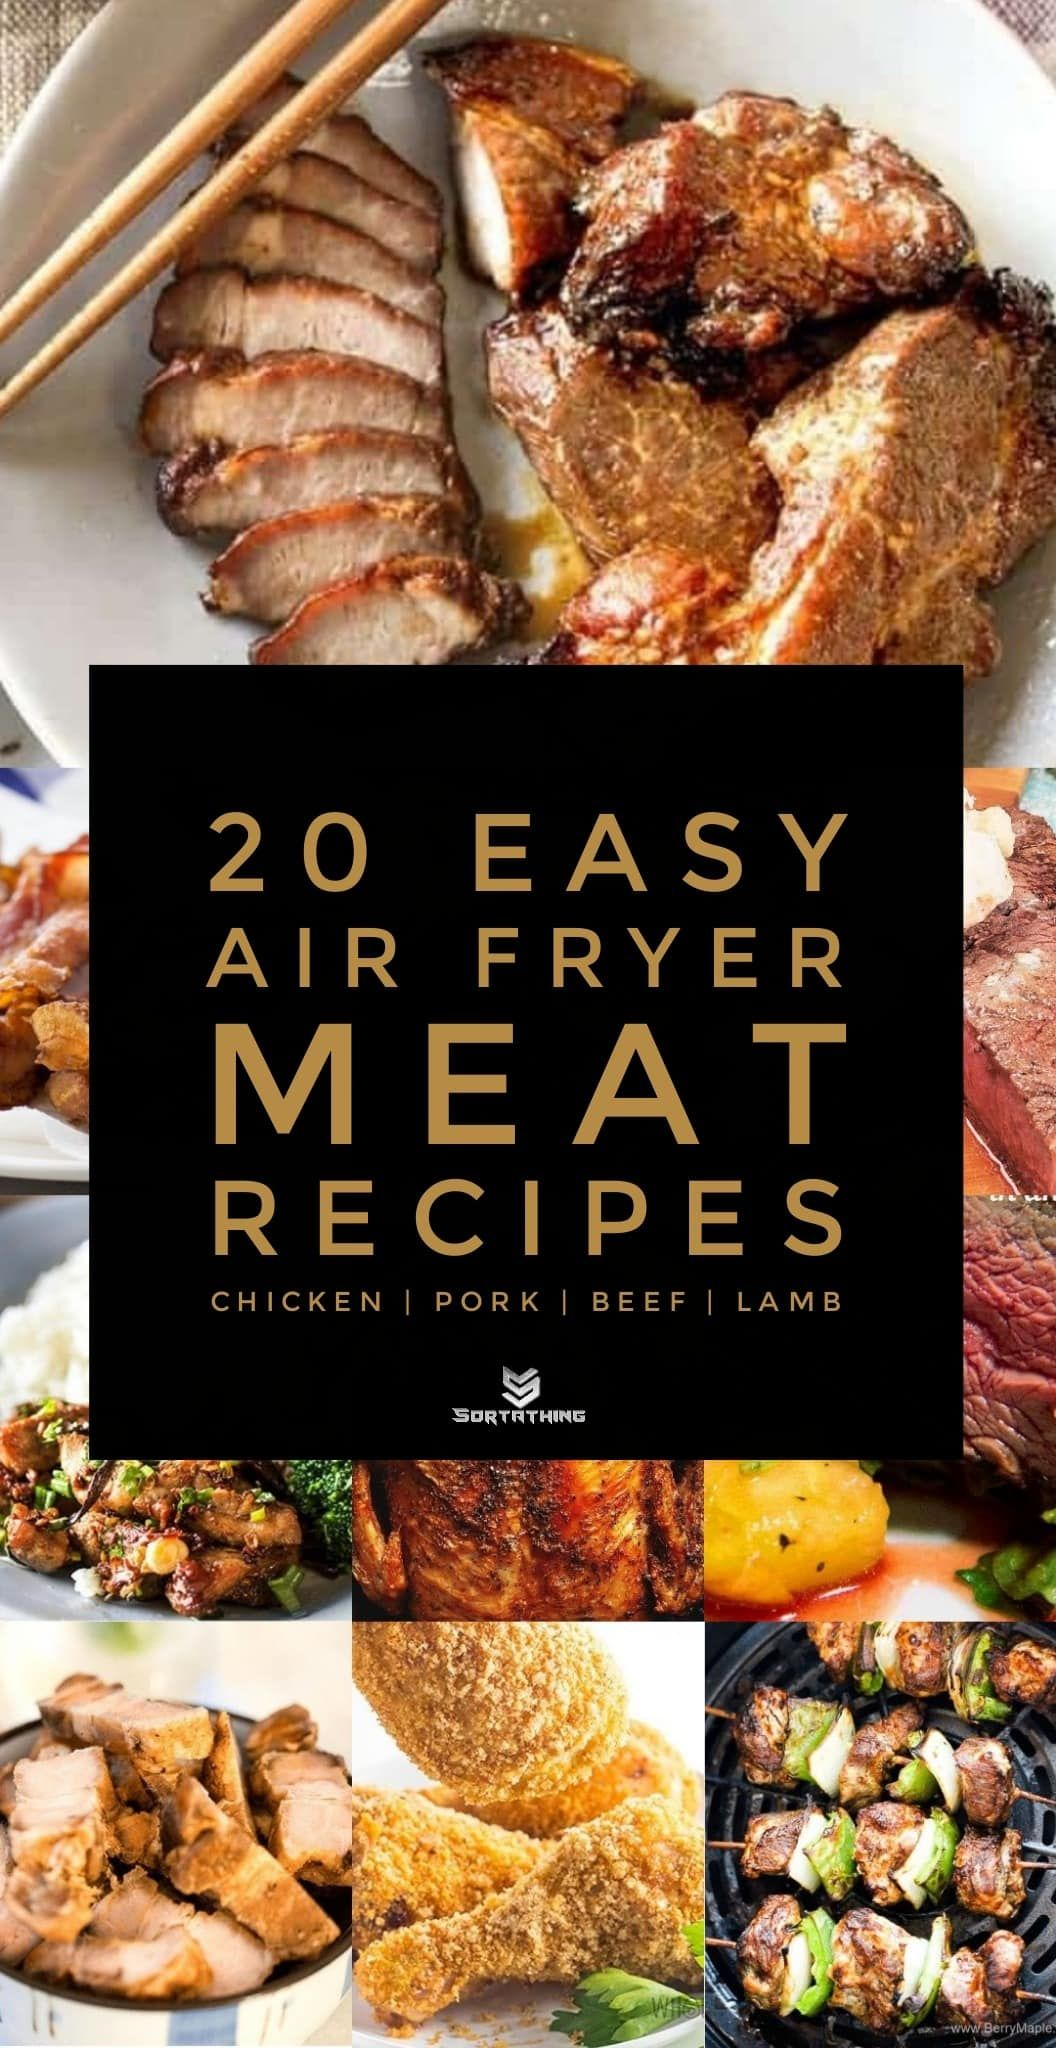 Photo of 20 Easy Air Fryer Meat Recipes With Chicken, Pork, Beef & Lamb